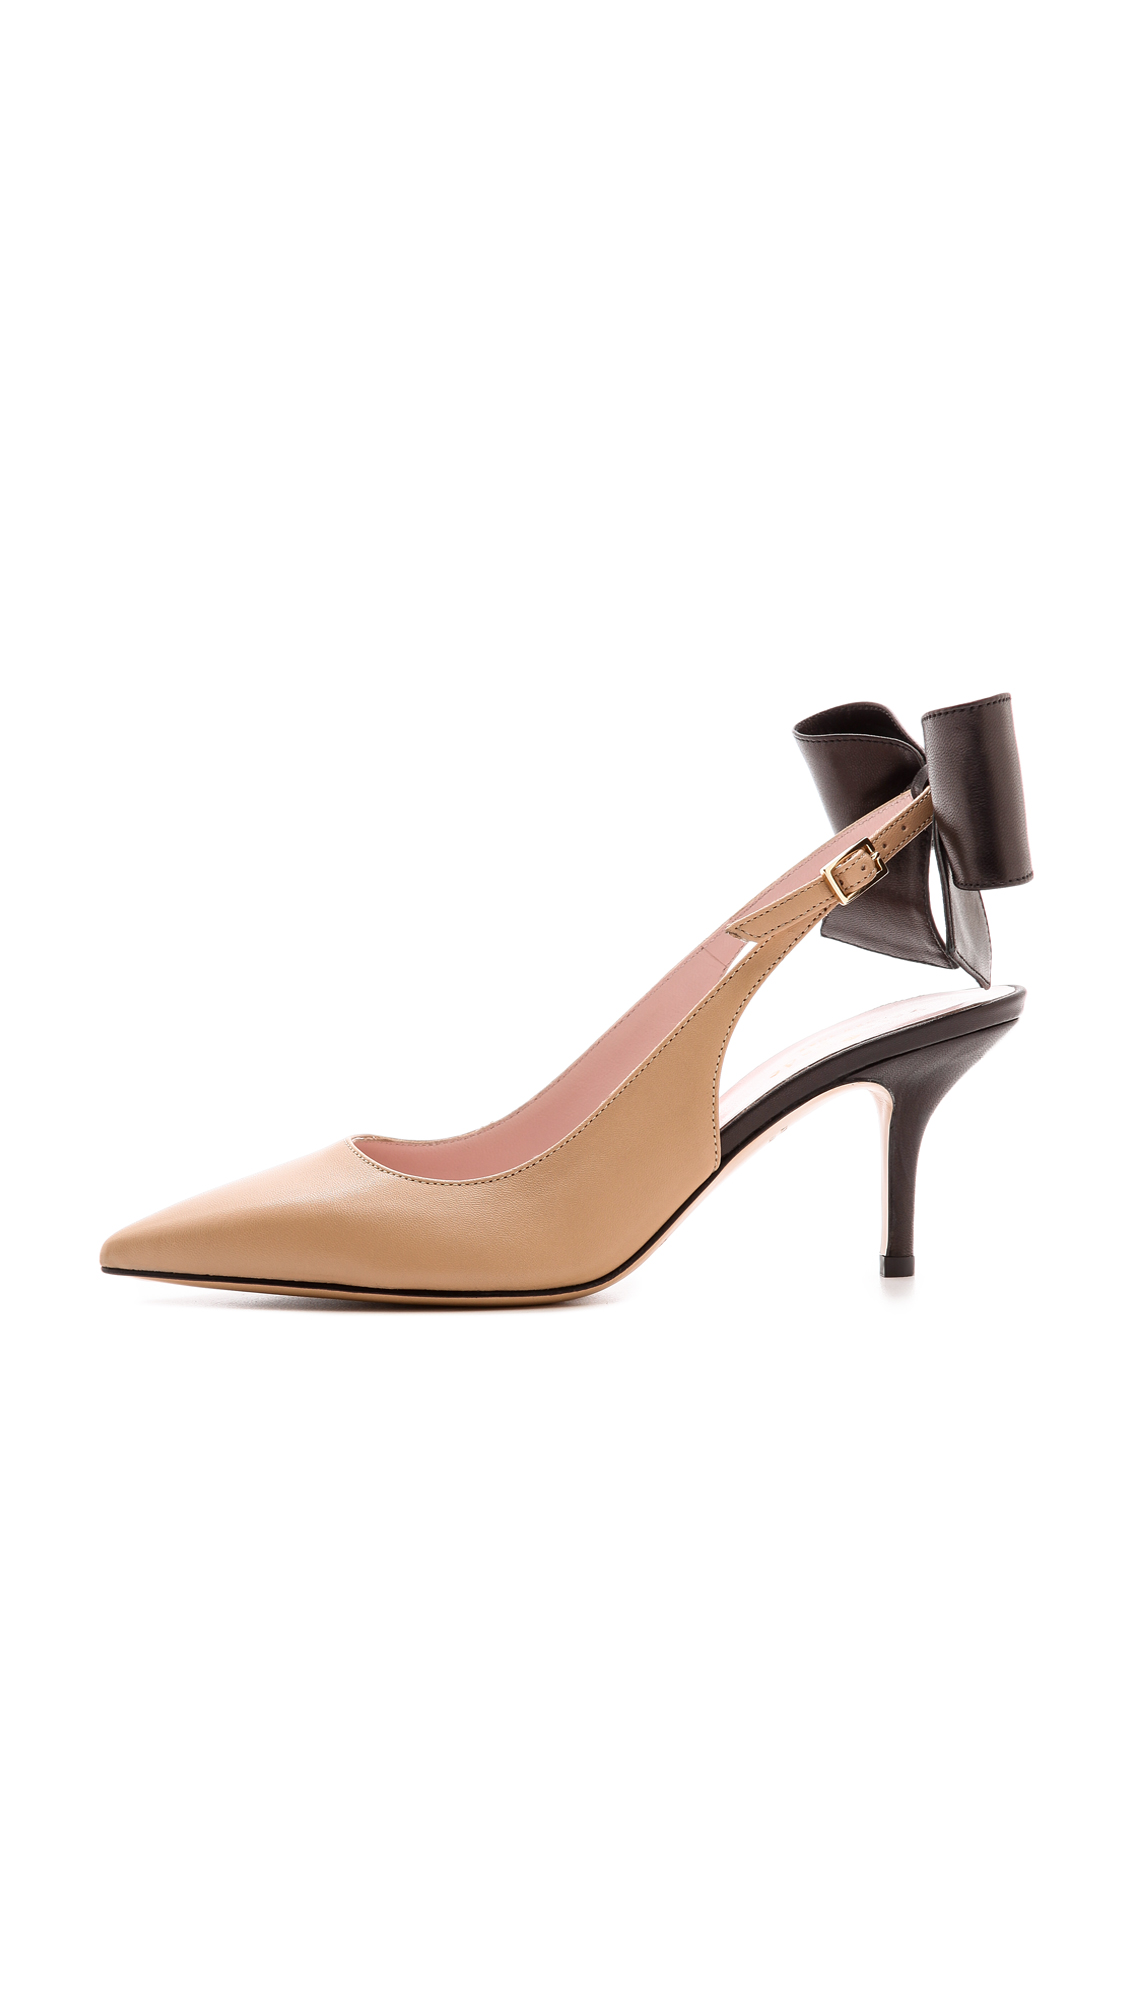 d42ac1e26a7 Kate Spade New York Jax Slingback Bow Pumps